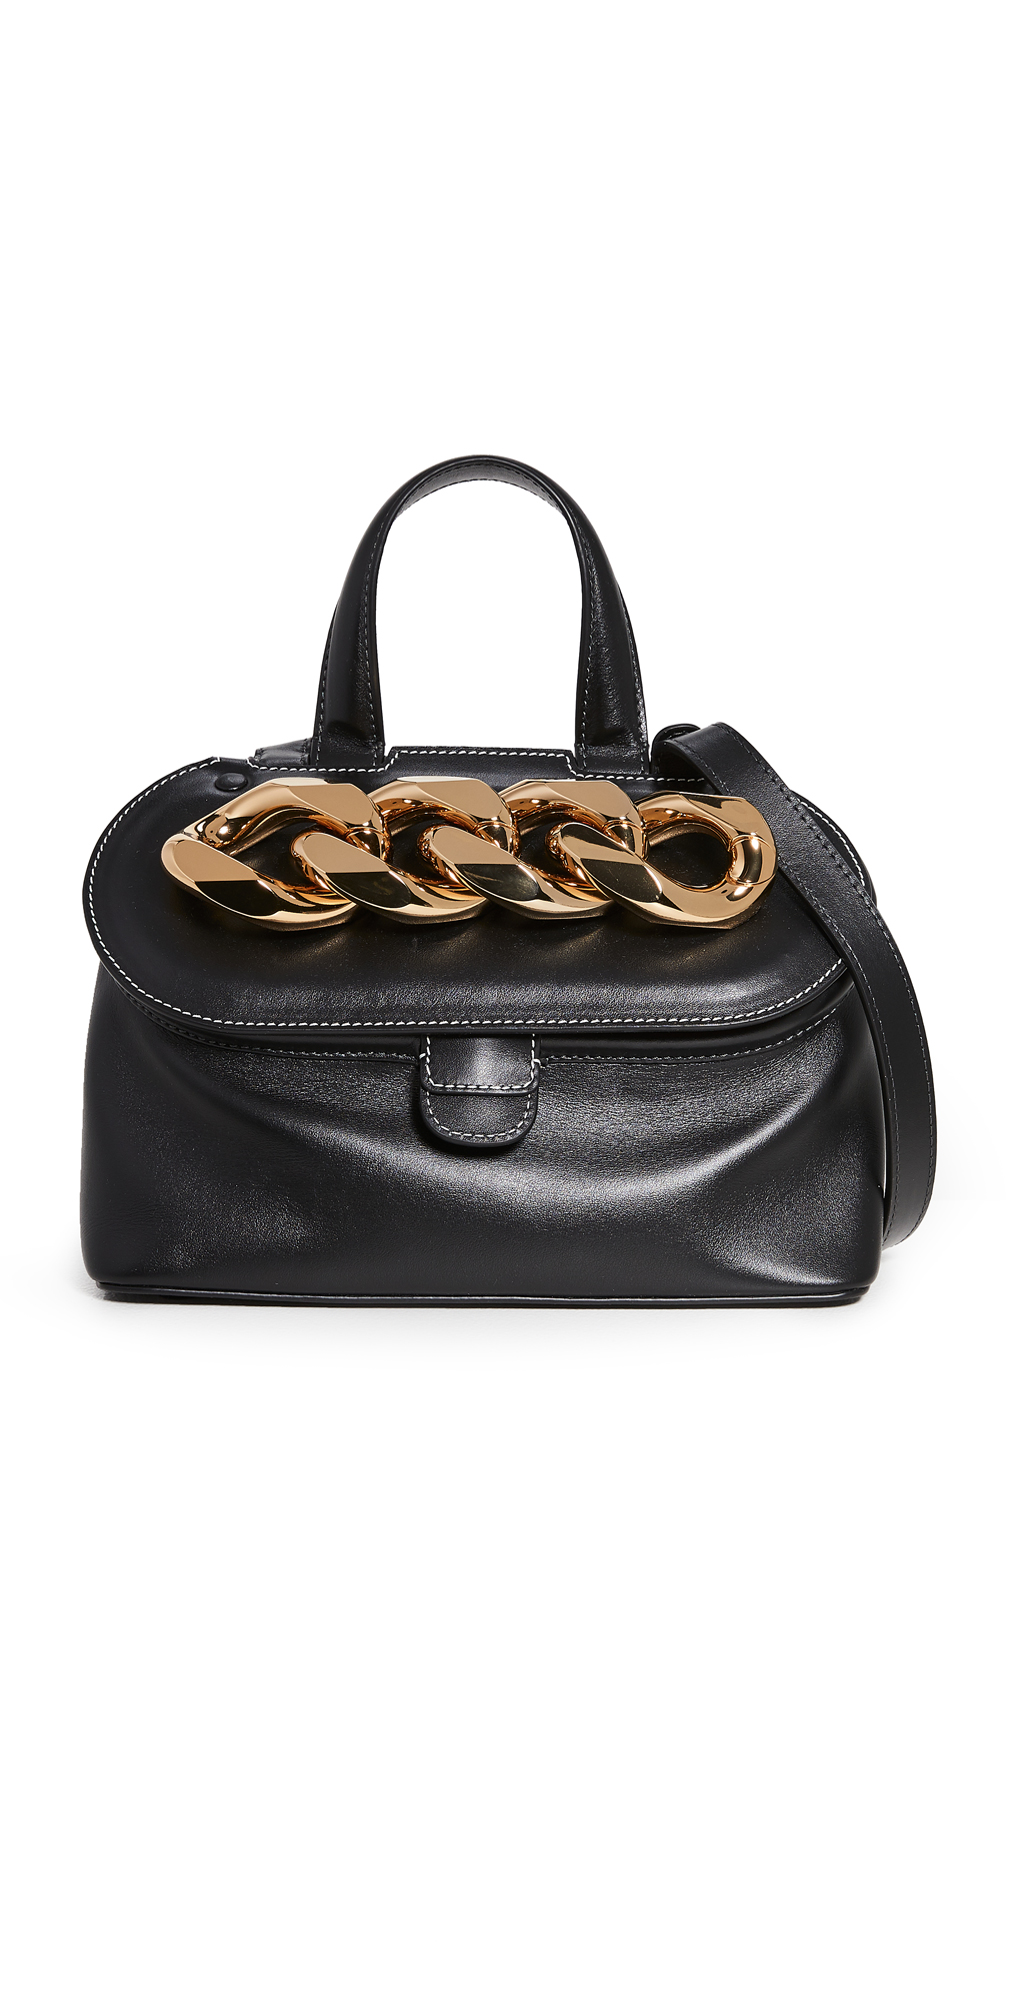 JW Anderson Small Chain Lid Bag